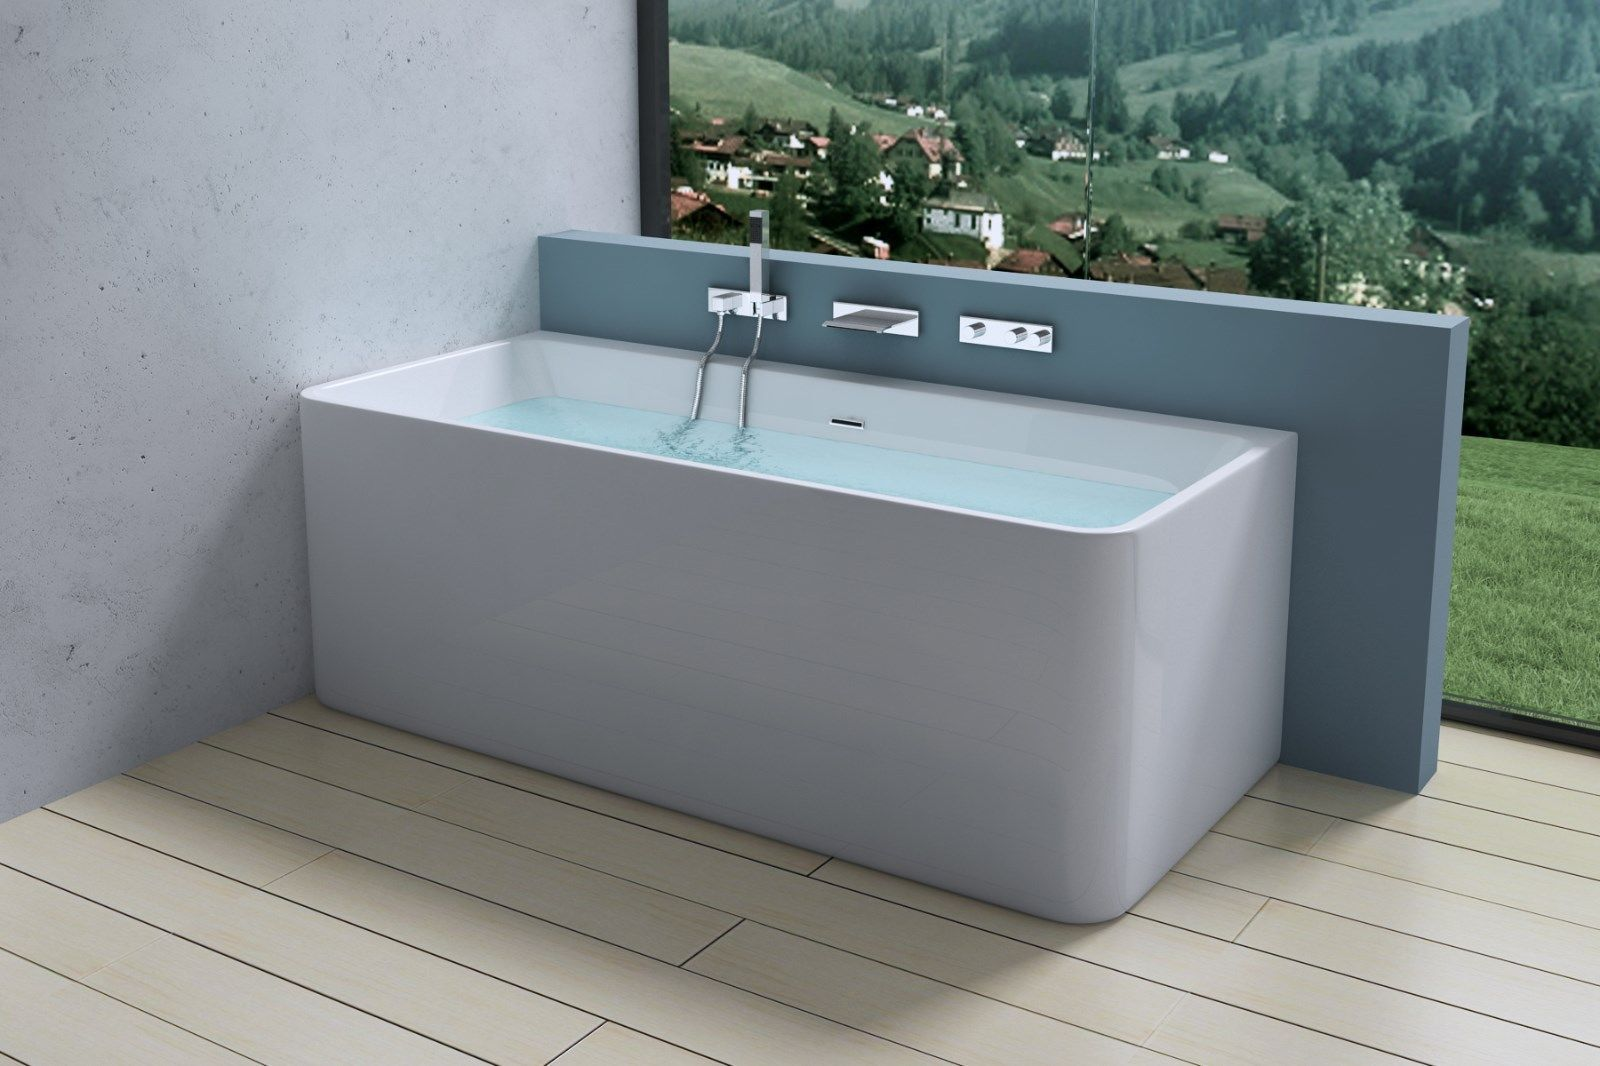 AquaSoak Square Luxury Modern Wall Mount Bath Tub Acrylic Designer ...